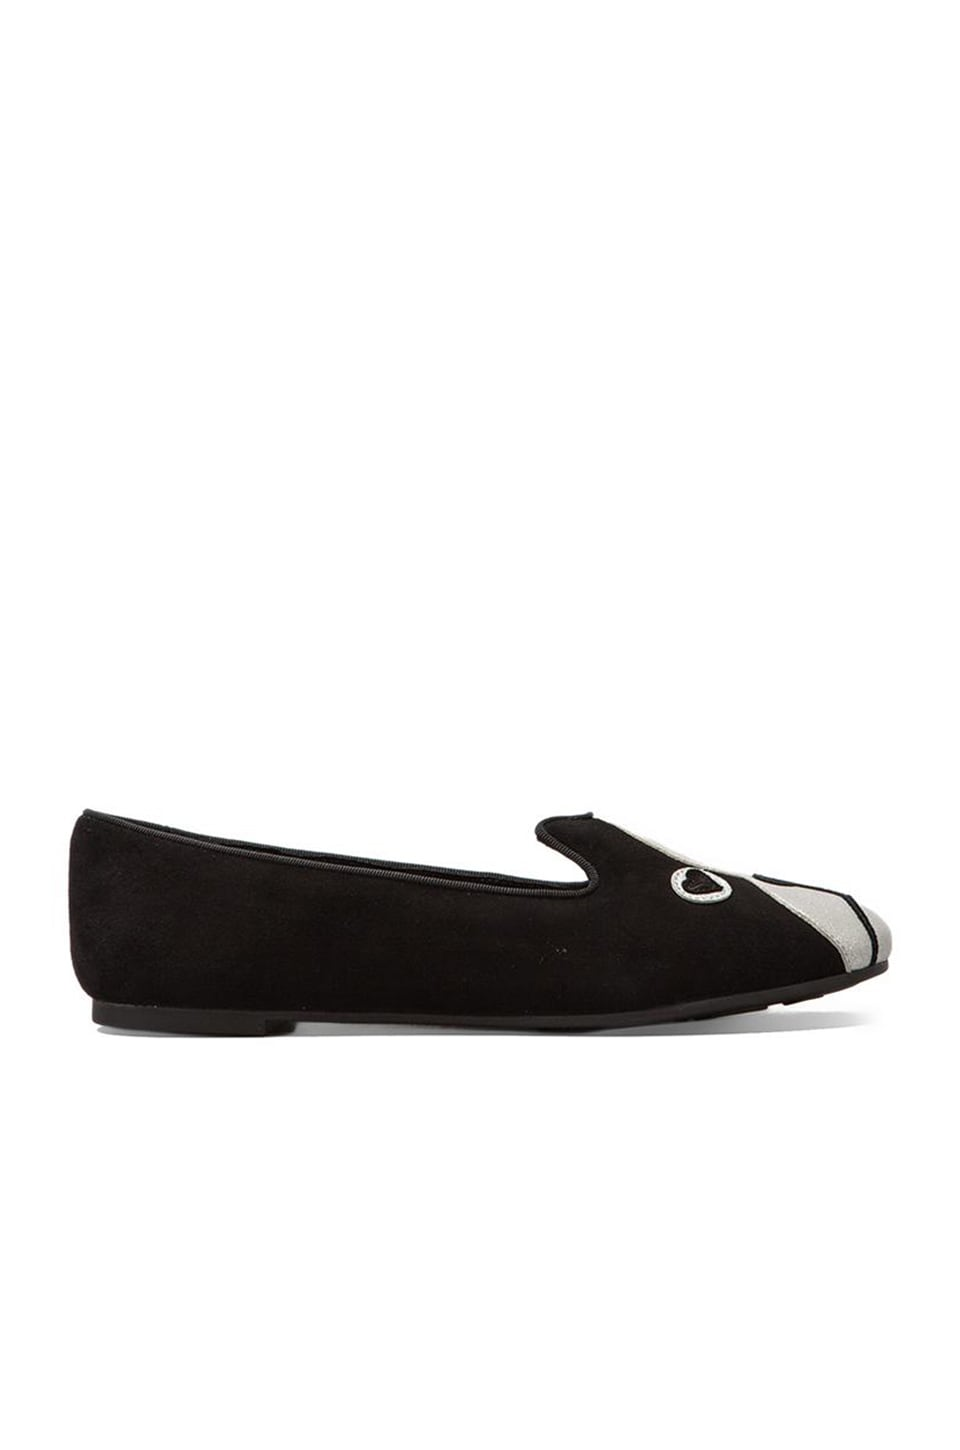 Marc by Marc Jacobs Shorty Suede Metallic Loafer in Black/Silver